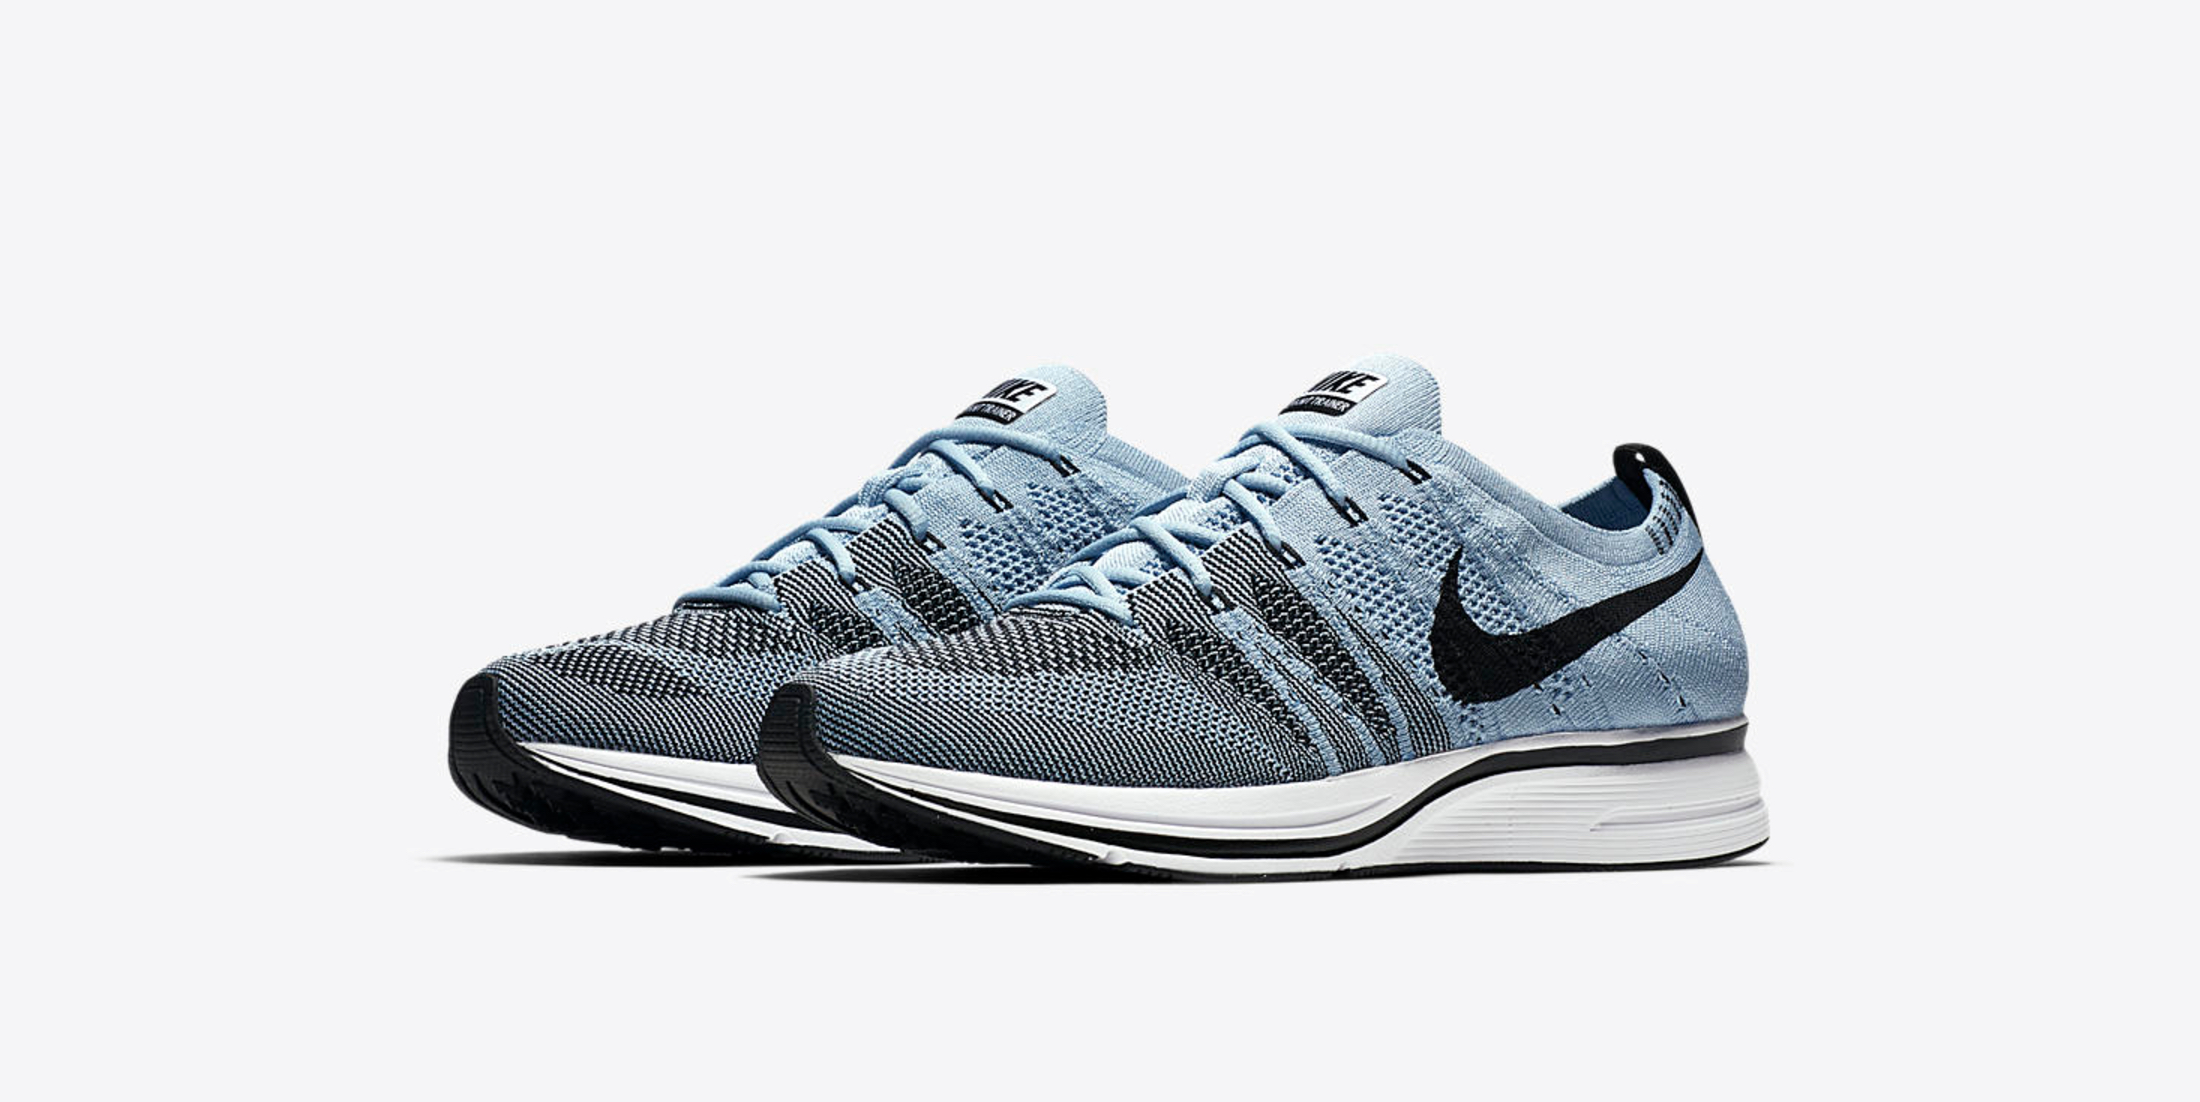 9a1f05710cd96 NIKE FLYKNIT TRAINER CIRRUS BLUE 7 - WearTesters